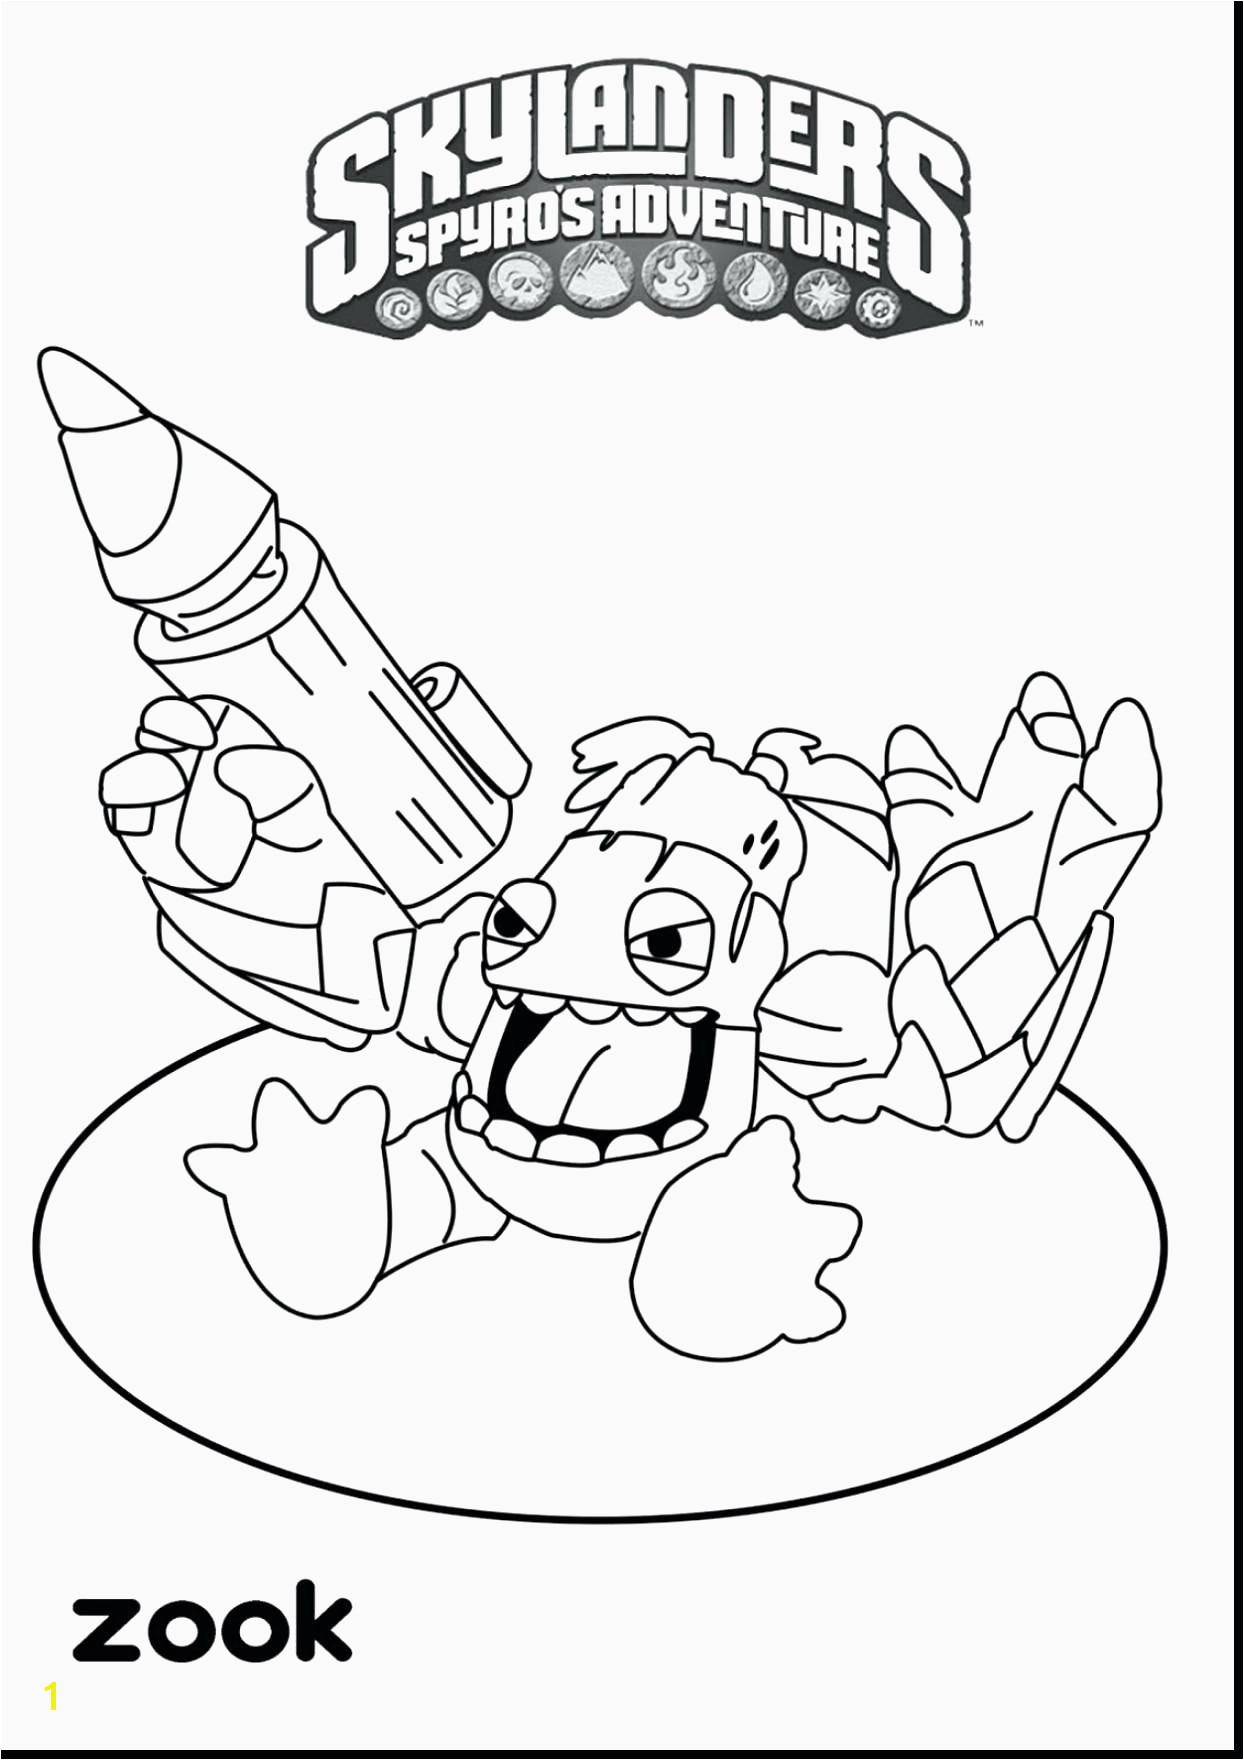 Aerial Coloring Pages Indian Coloring Pages Awesome Adult Indian Coloring Pages Coloring